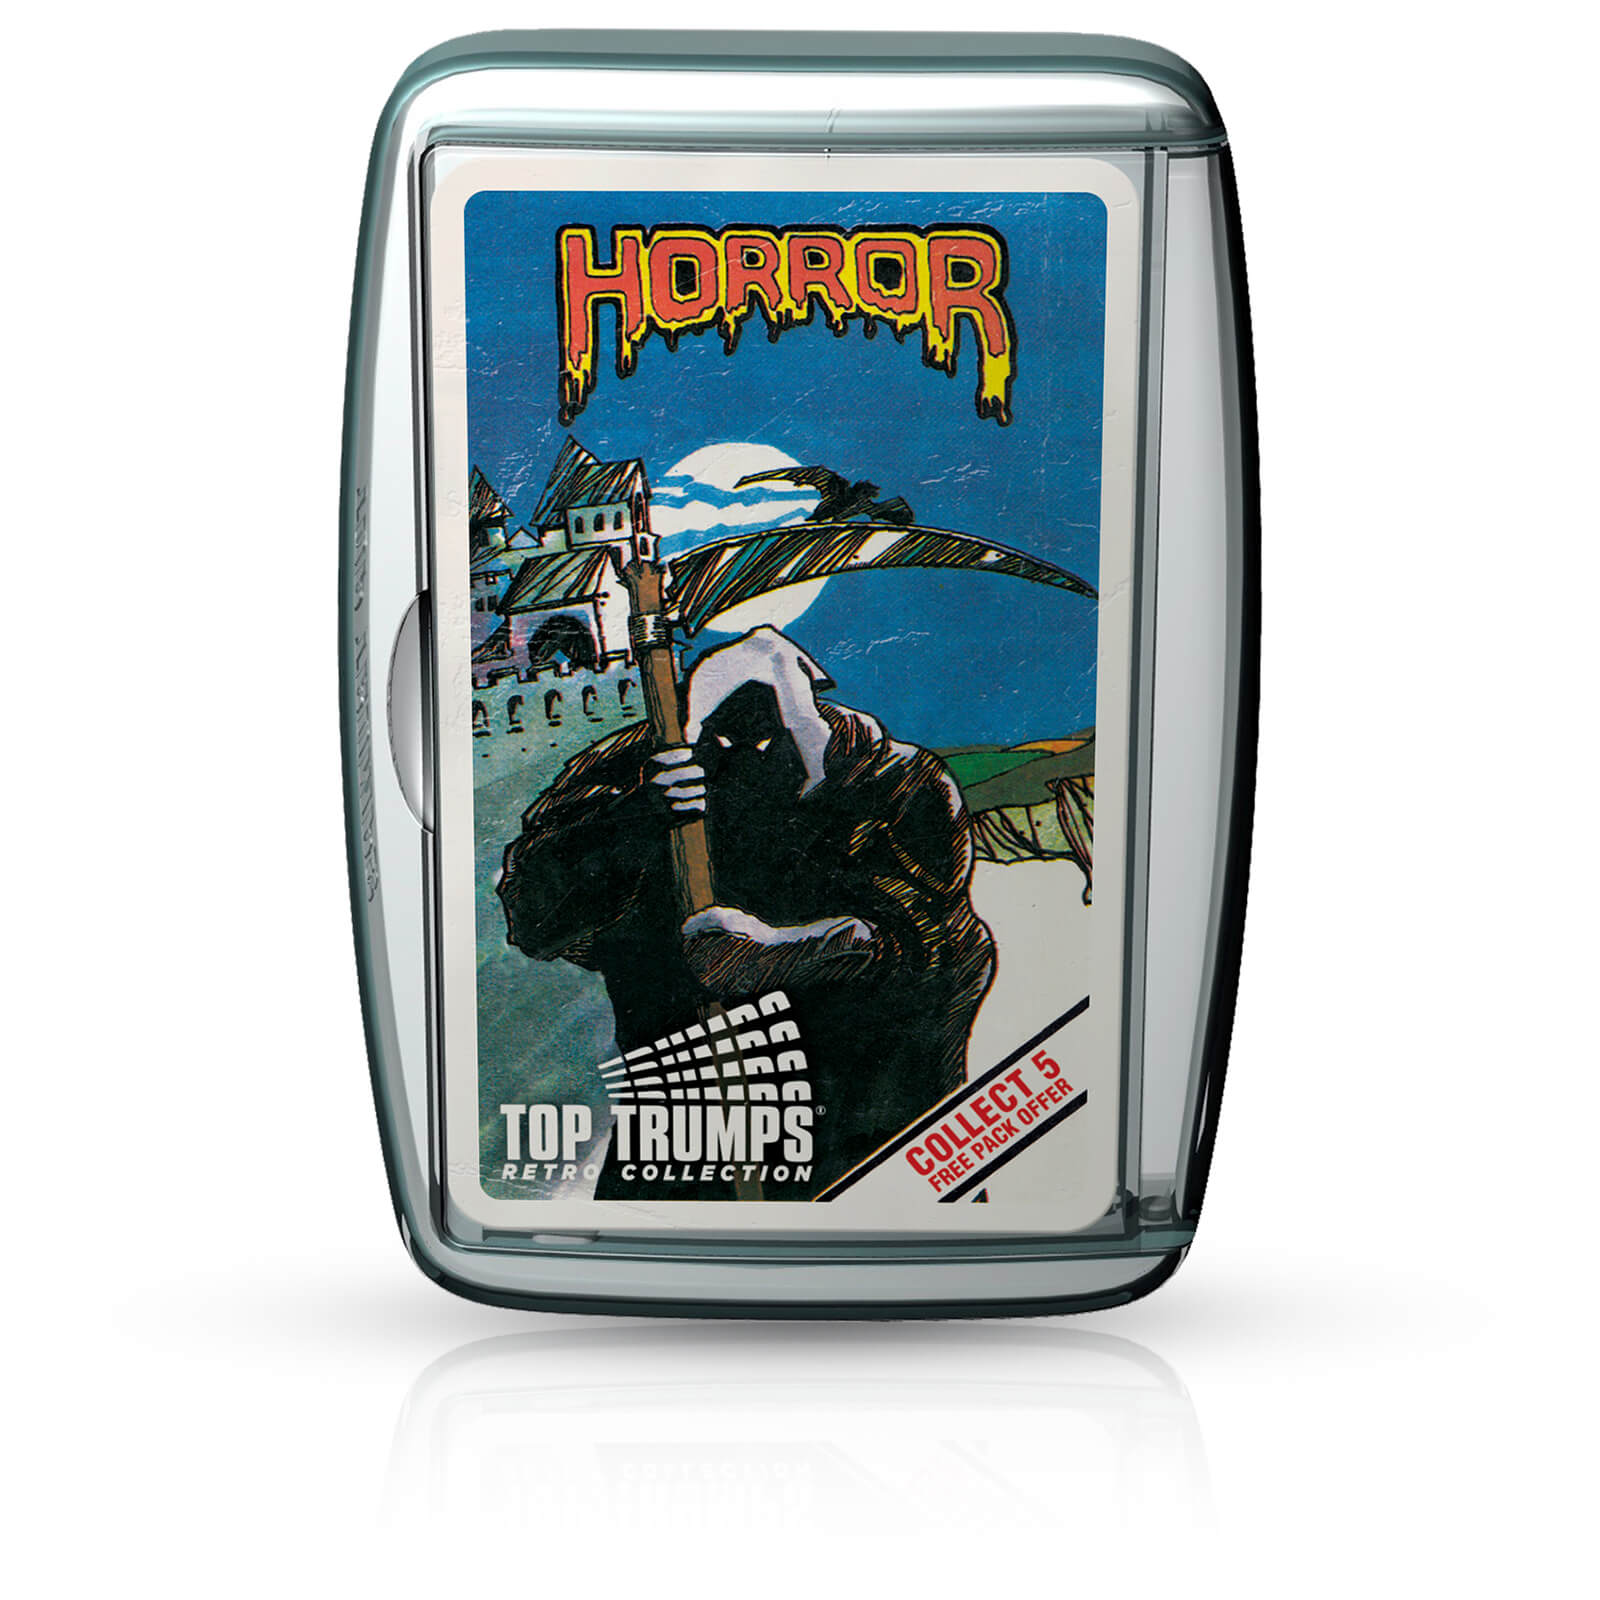 Image of Top Trumps Card Game - Horror 2 Retro Edition